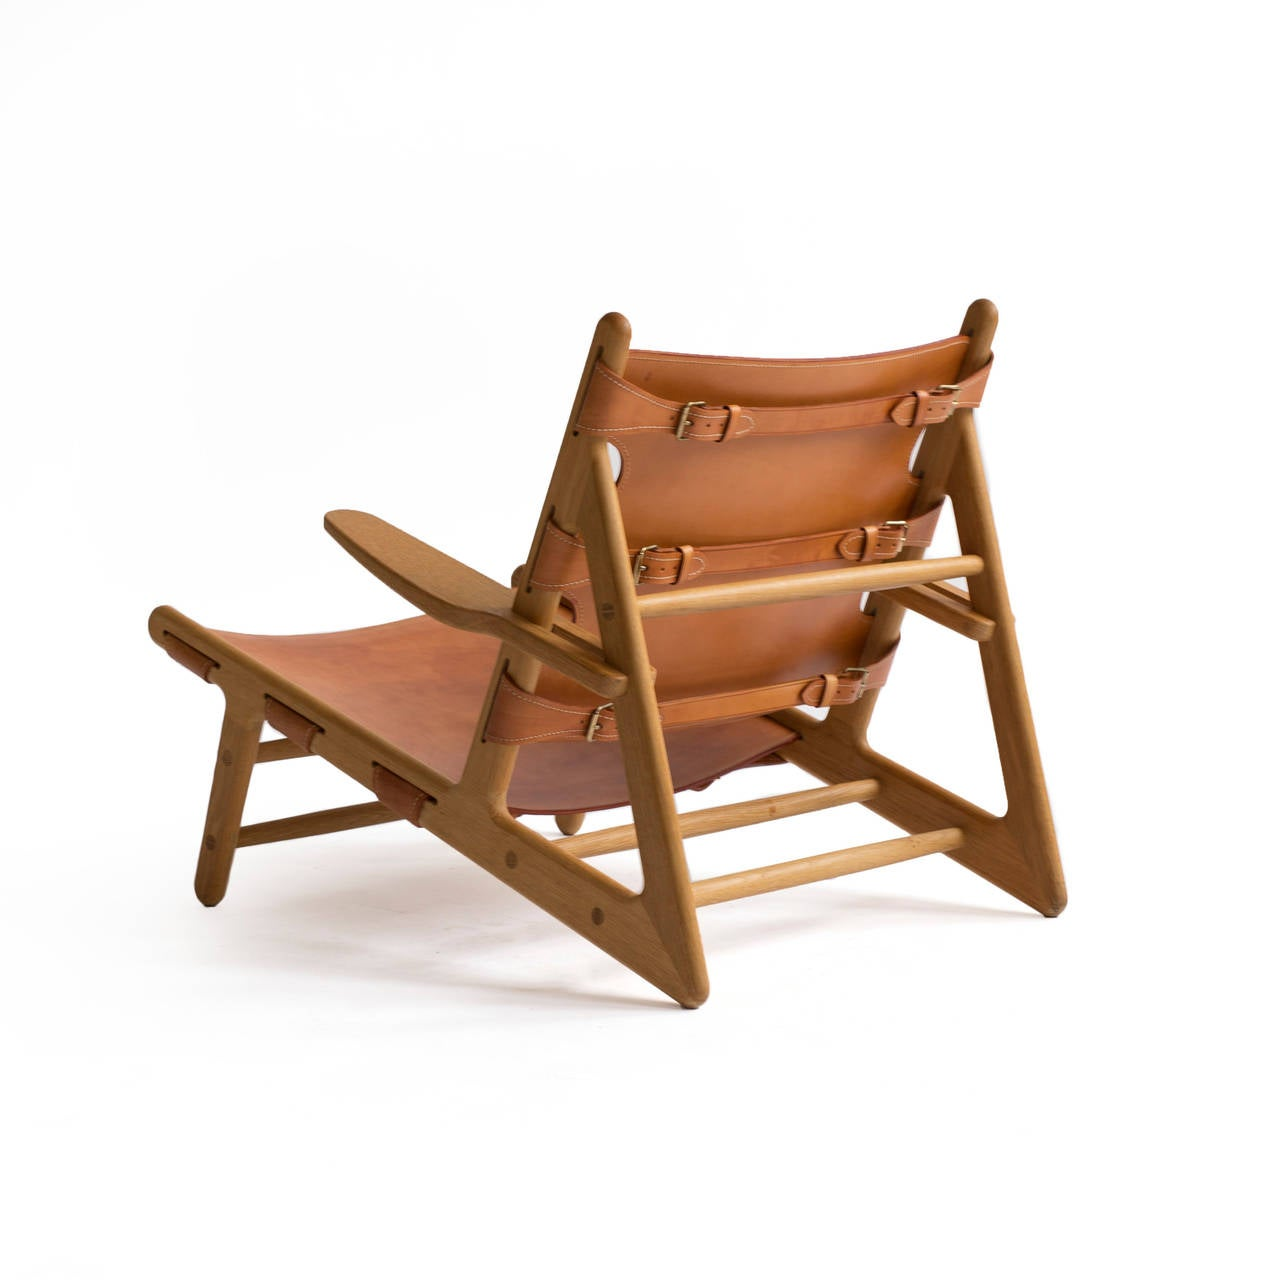 hunting seats and chairs swivel chair on hardwood floor børge mogensen 39hunting 39 at 1stdibs